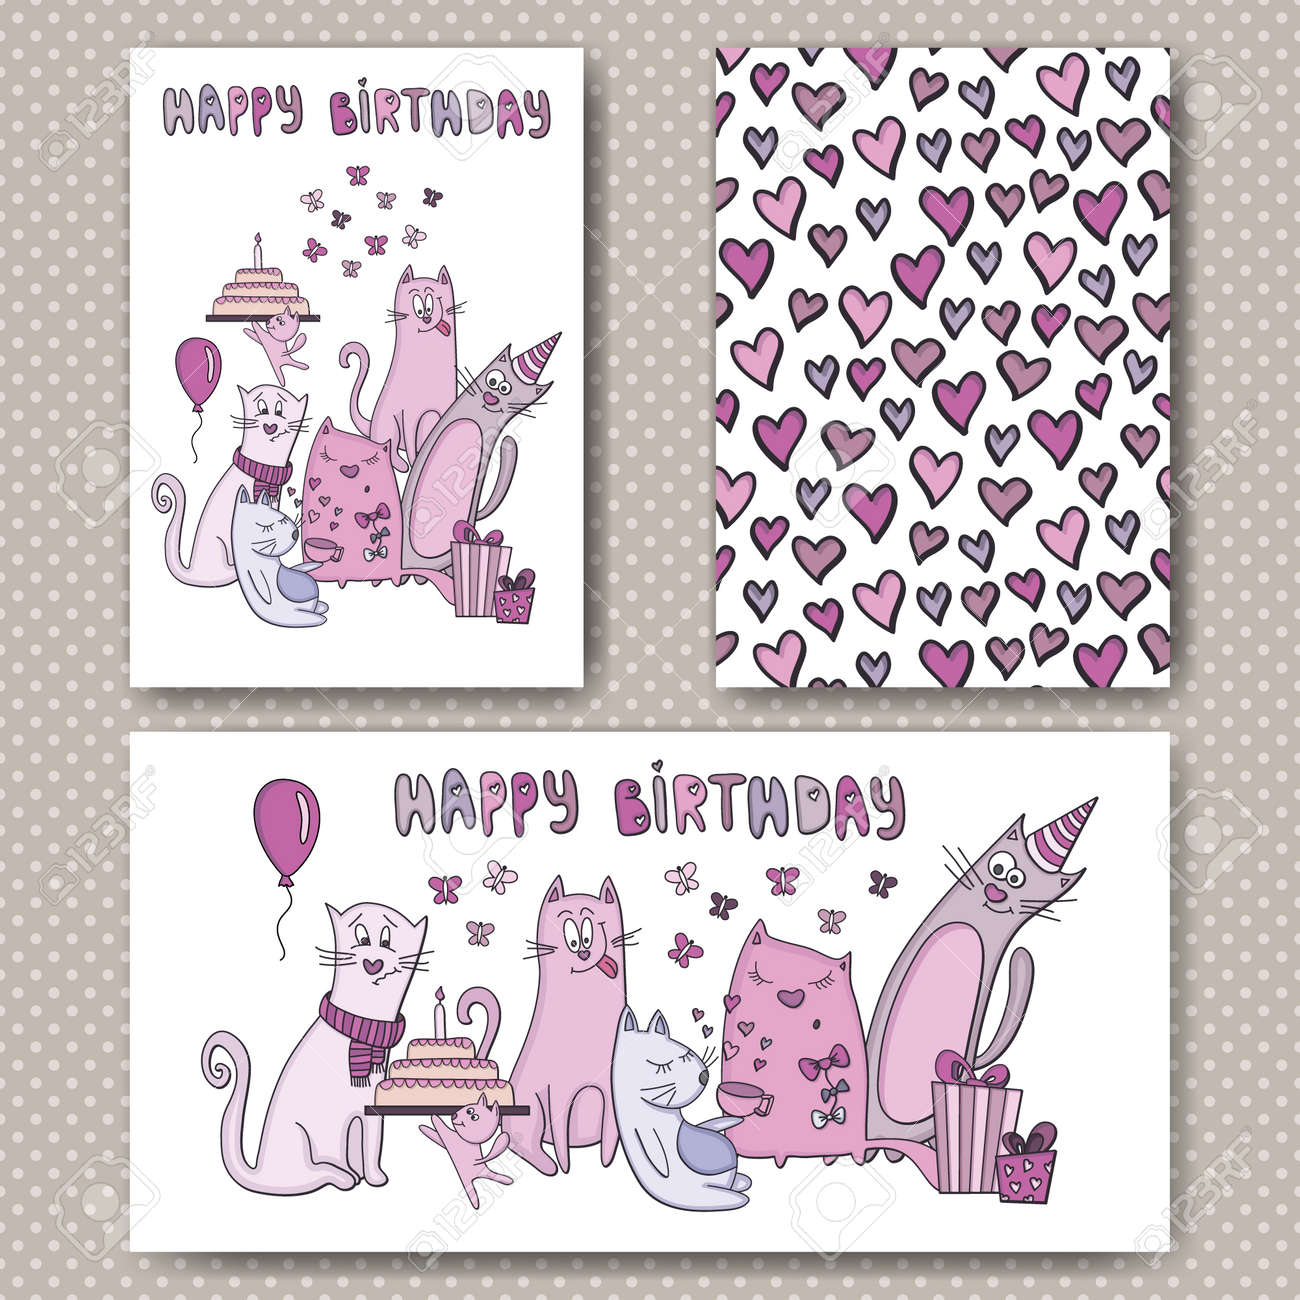 Birthday Cards Design With Funny Cats And Hearts Vector Template For Card Letter